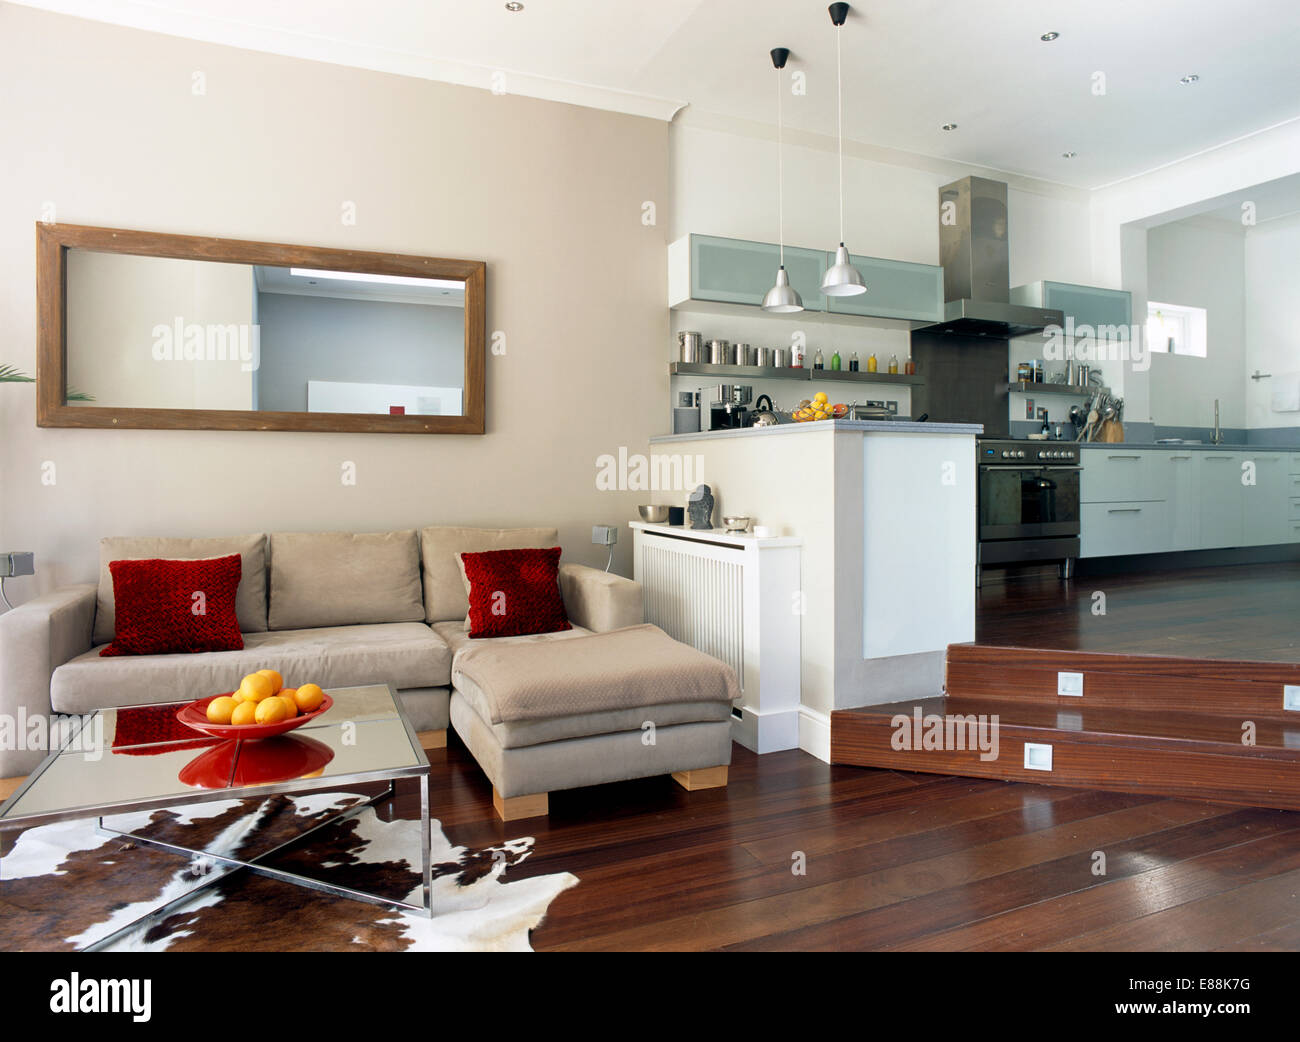 Rectangular Mirror Above Beige Suede Modular Sofa In Split Level Kitchen Living Room With Lighting Set Into Steps